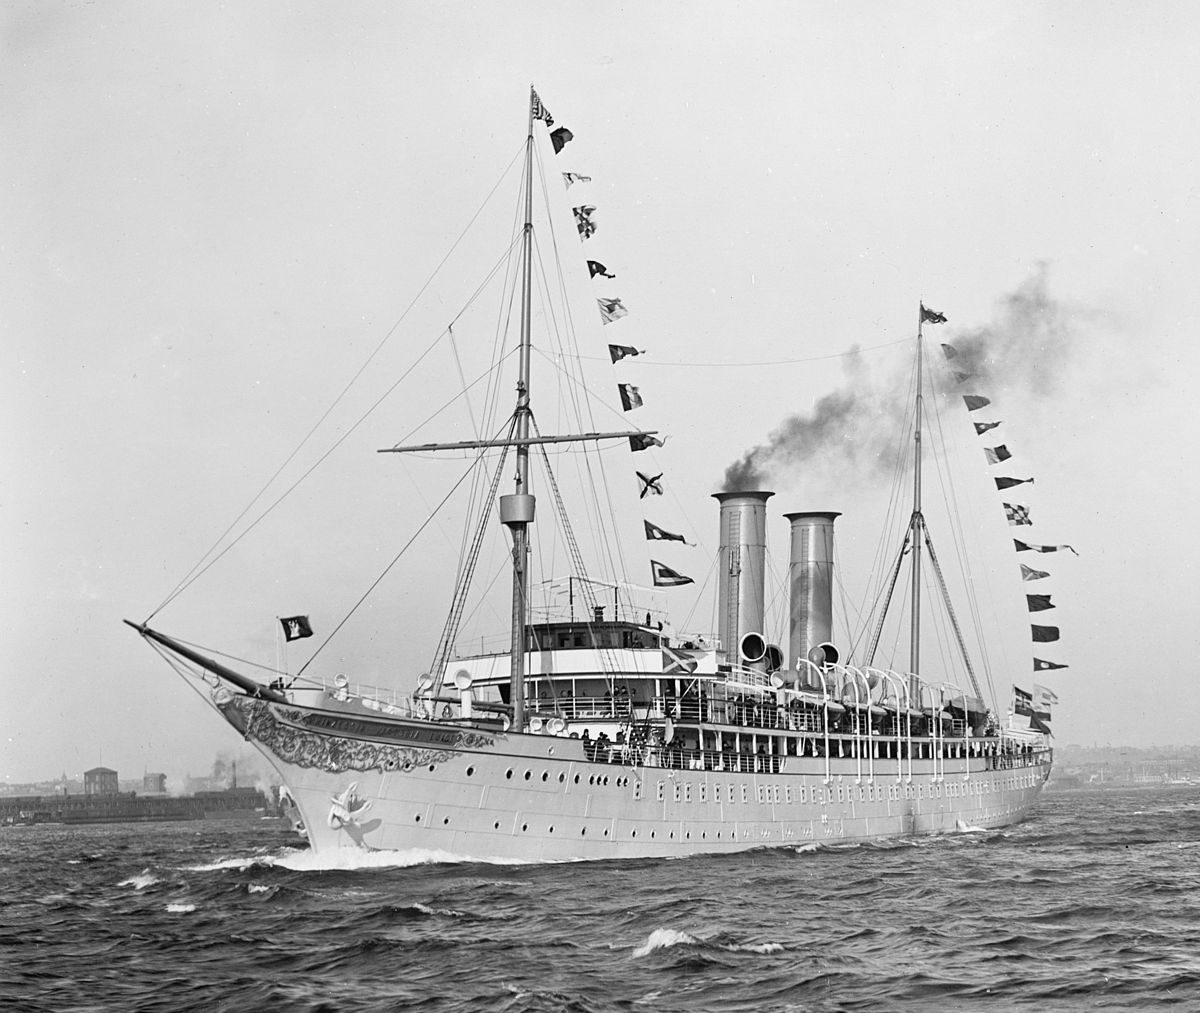 Prinzessin Victoria Luise Wikipedia - First cruise ship in the world